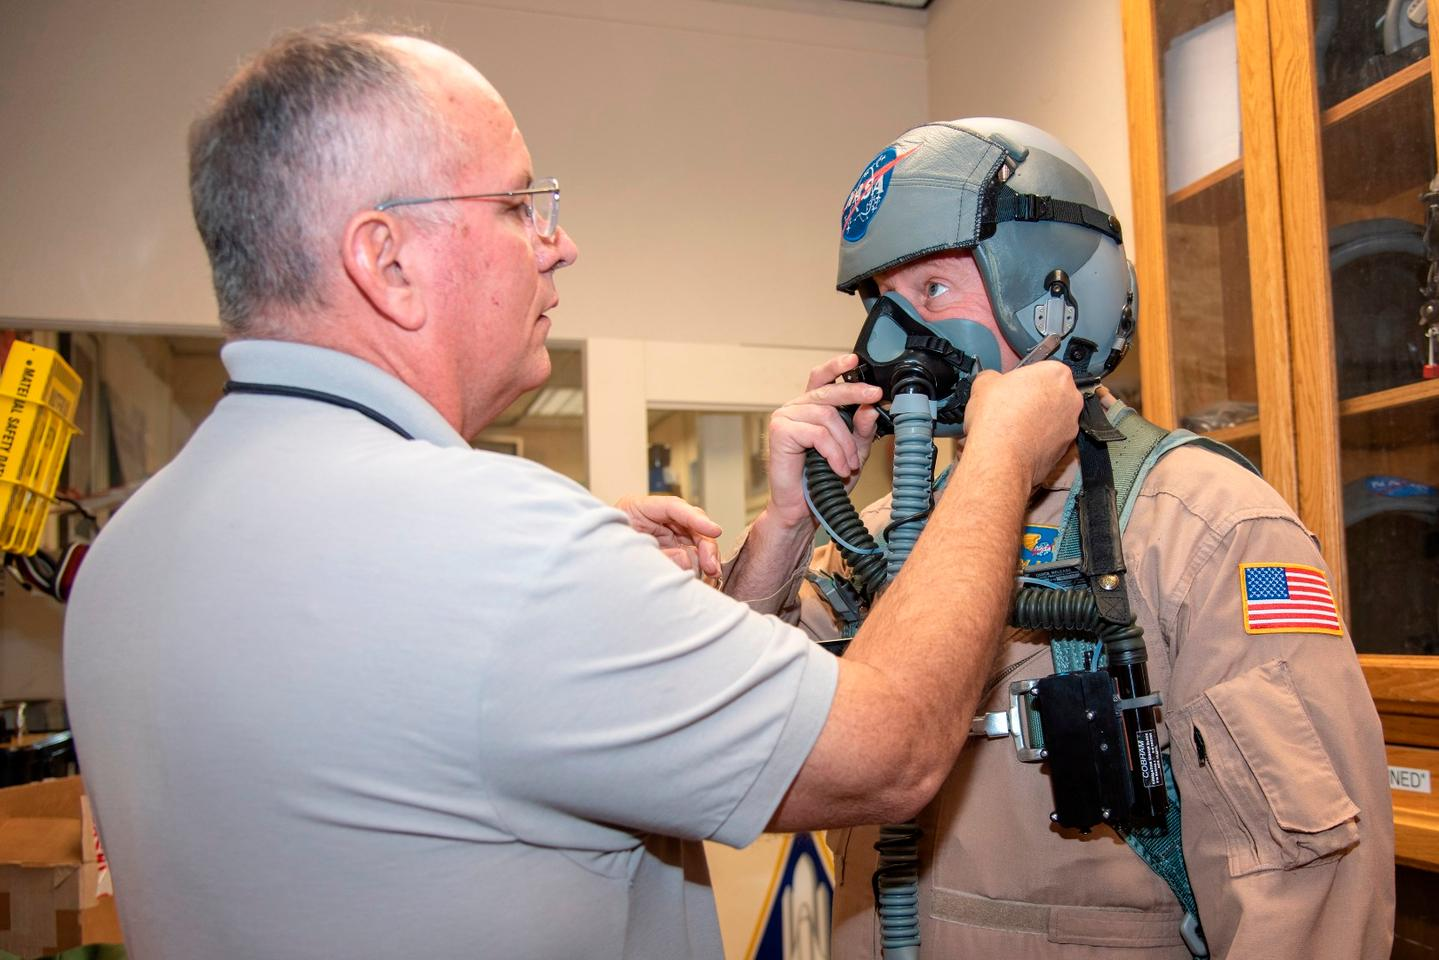 NASA pilot Jim Less is assisted by life support as he is fitted with a Cobham designed VigiLOX pilot oxygen monitoring system